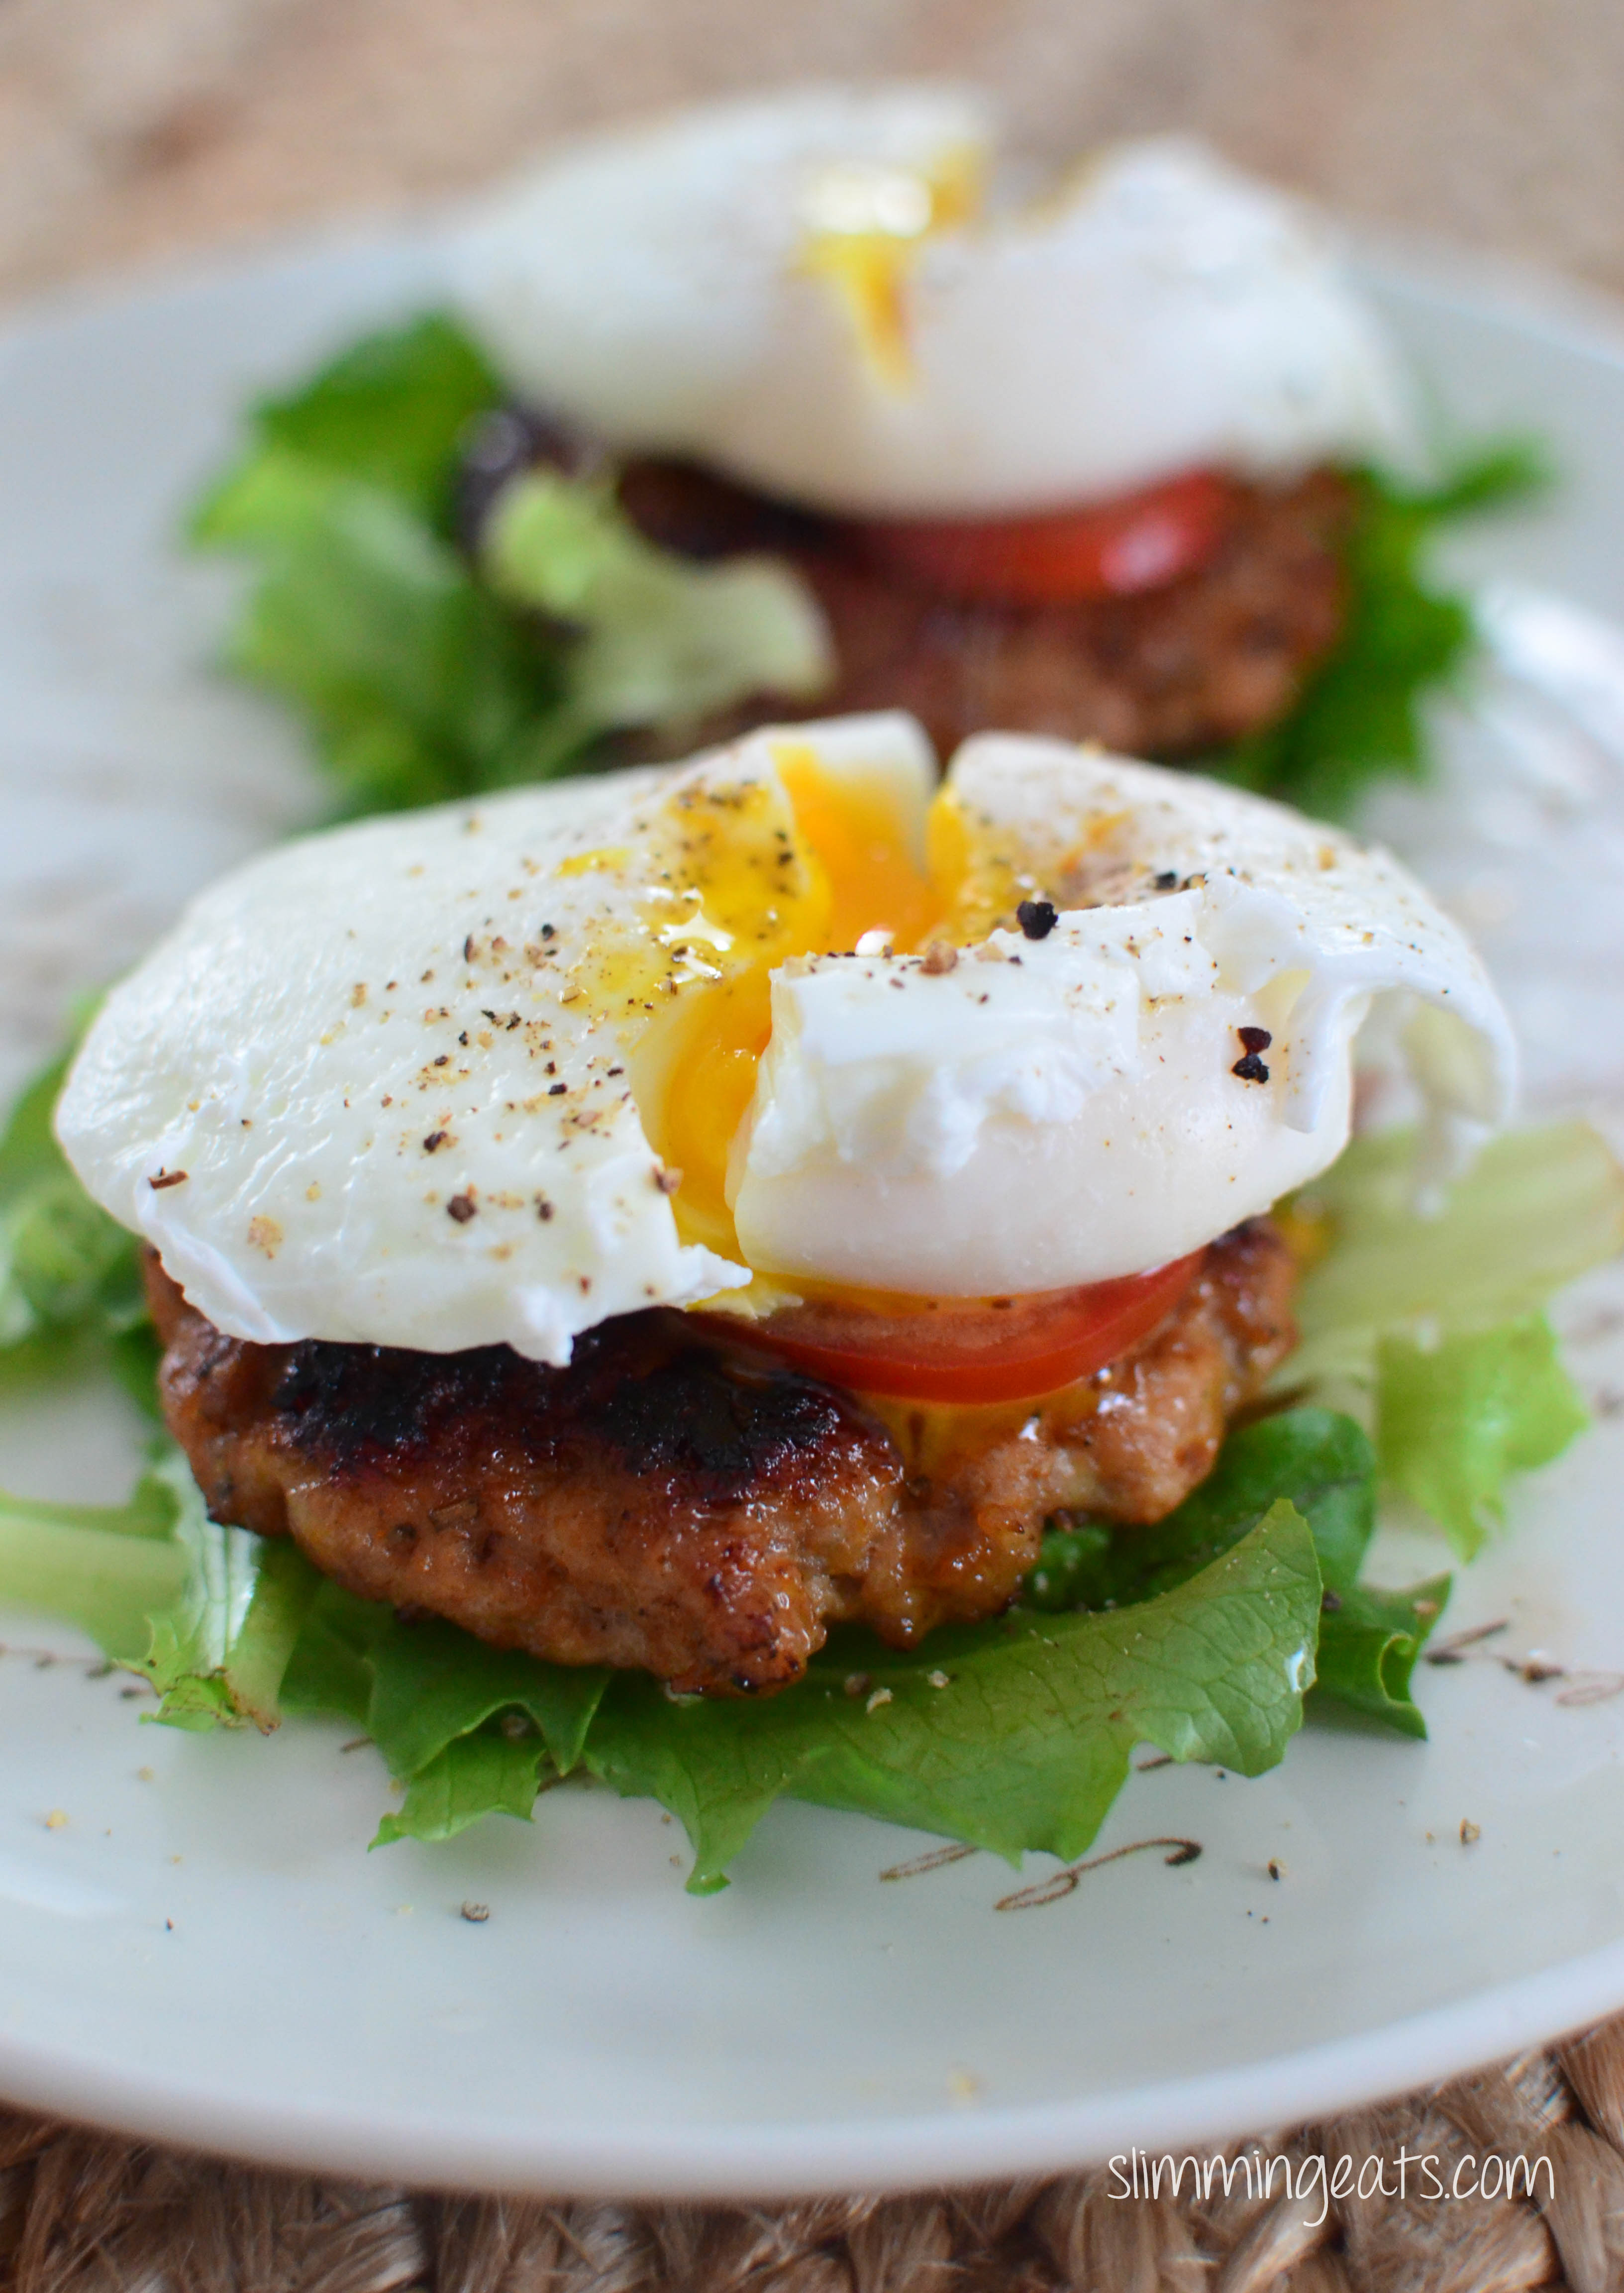 Cheats Poached Eggs over sausage Pattie with tomatoes and lettuce on white plate